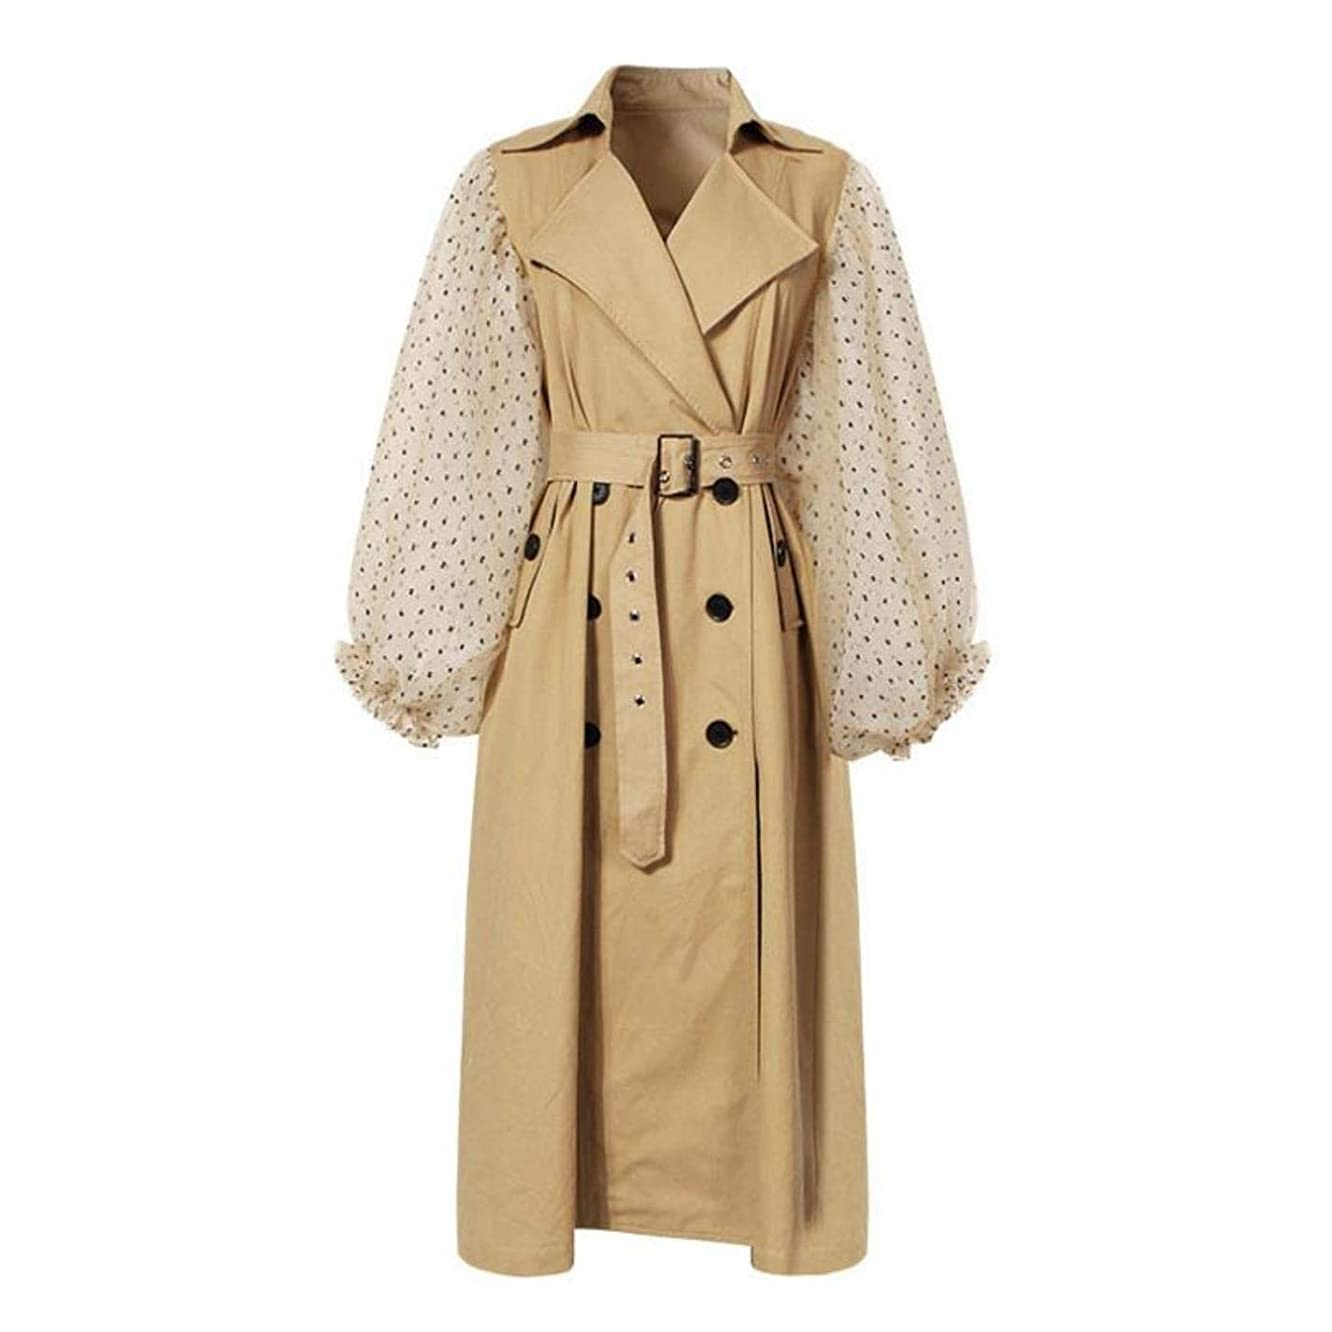 Autumn mesh Patchwork Women's Long Trench Coat